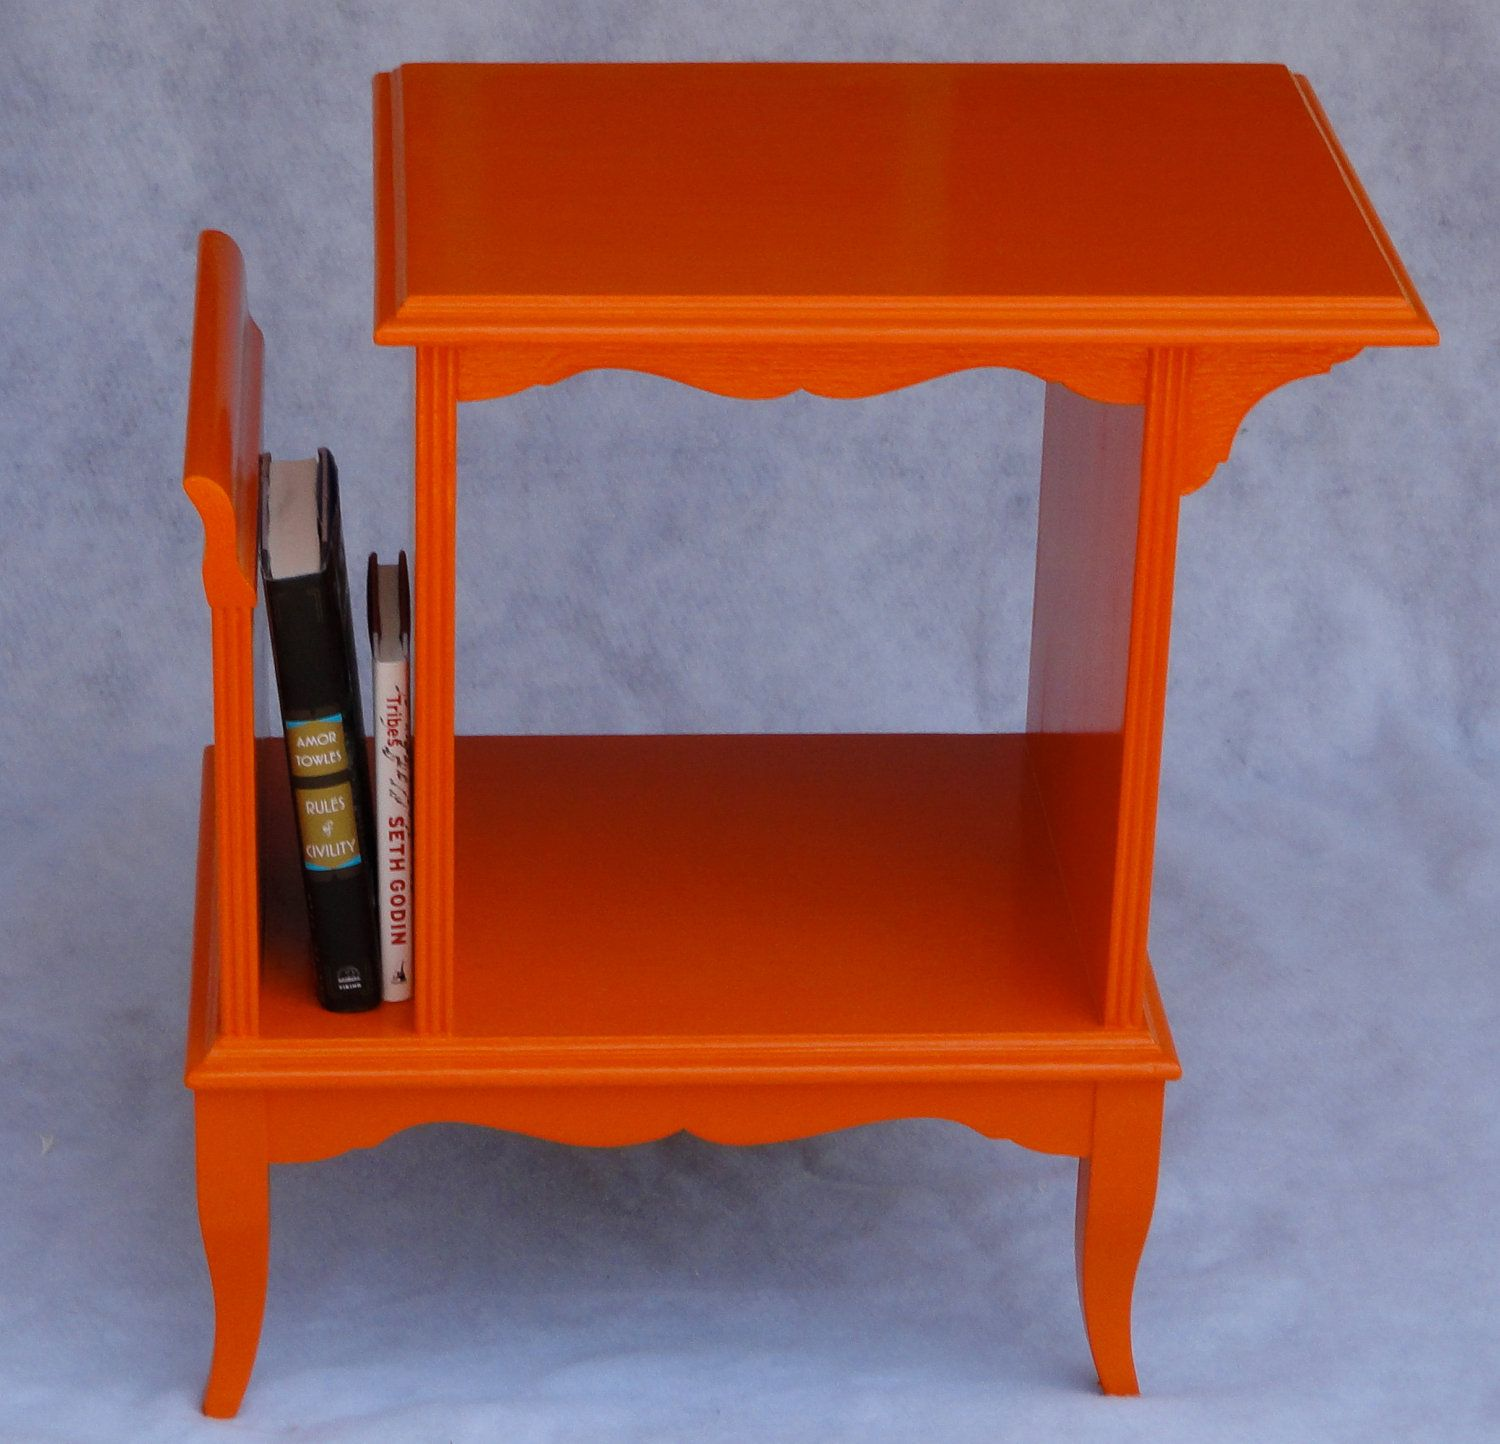 Painting Side Table Ideas Upcycled Orange Painted Magazine Rack Side Table